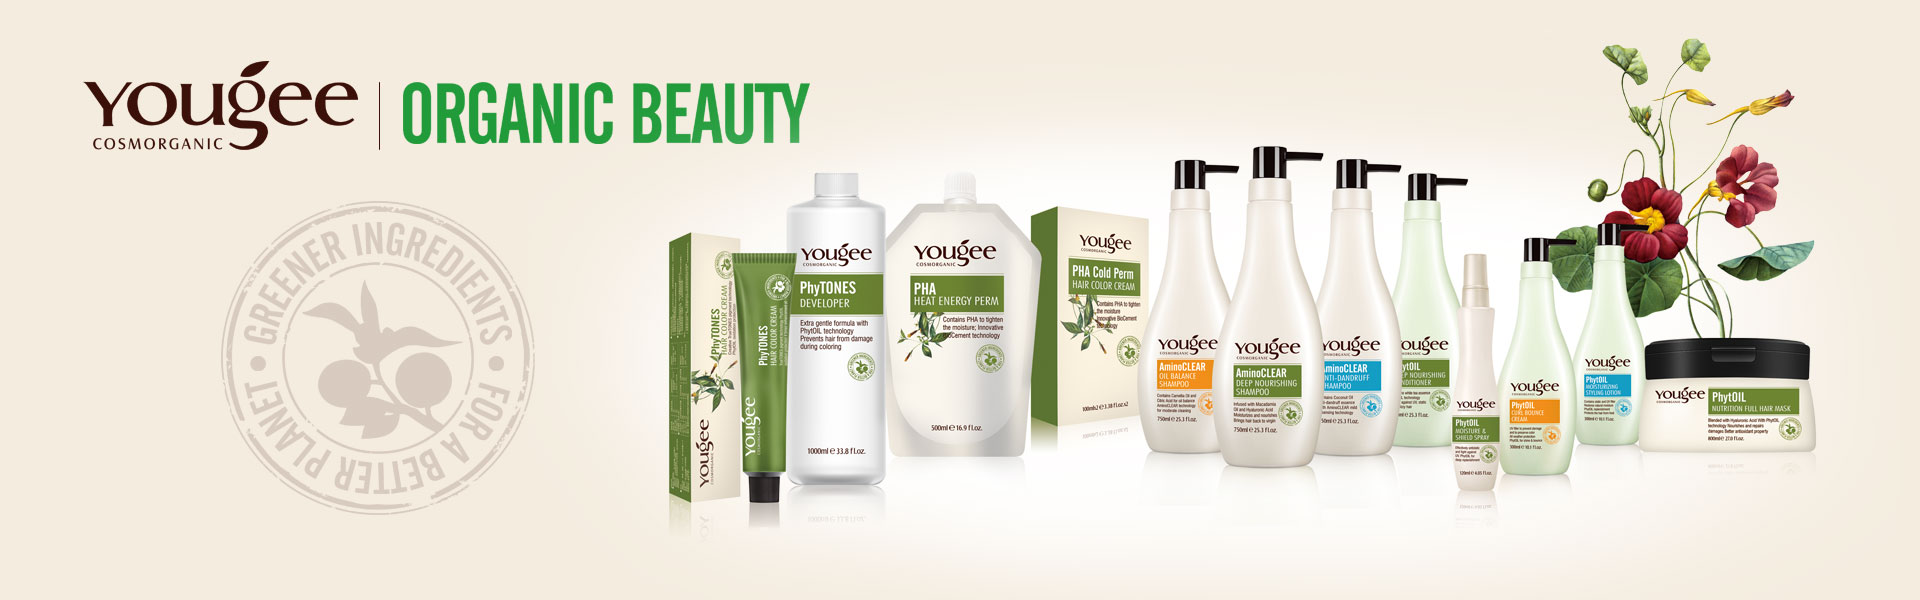 Yougee Organic Natural Hair Care Products